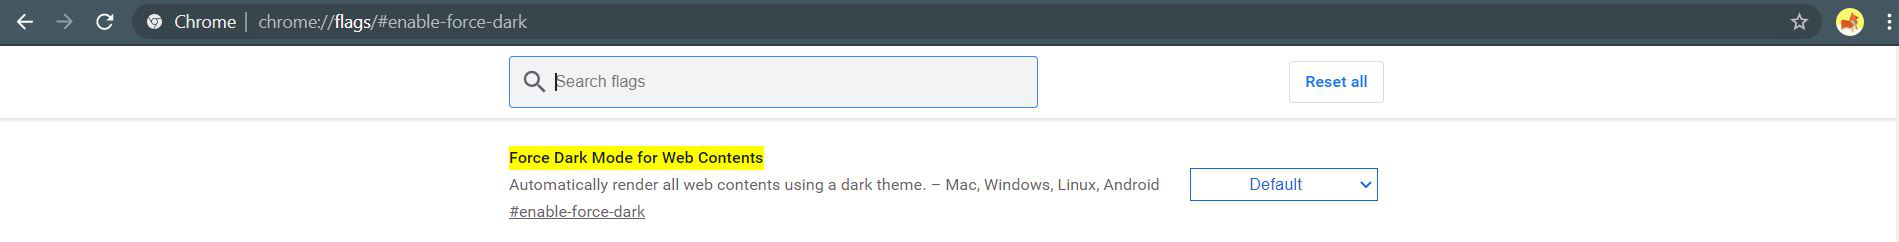 How to Force Dark Mode on Web Contents in Chrome-GeeksforGeeks